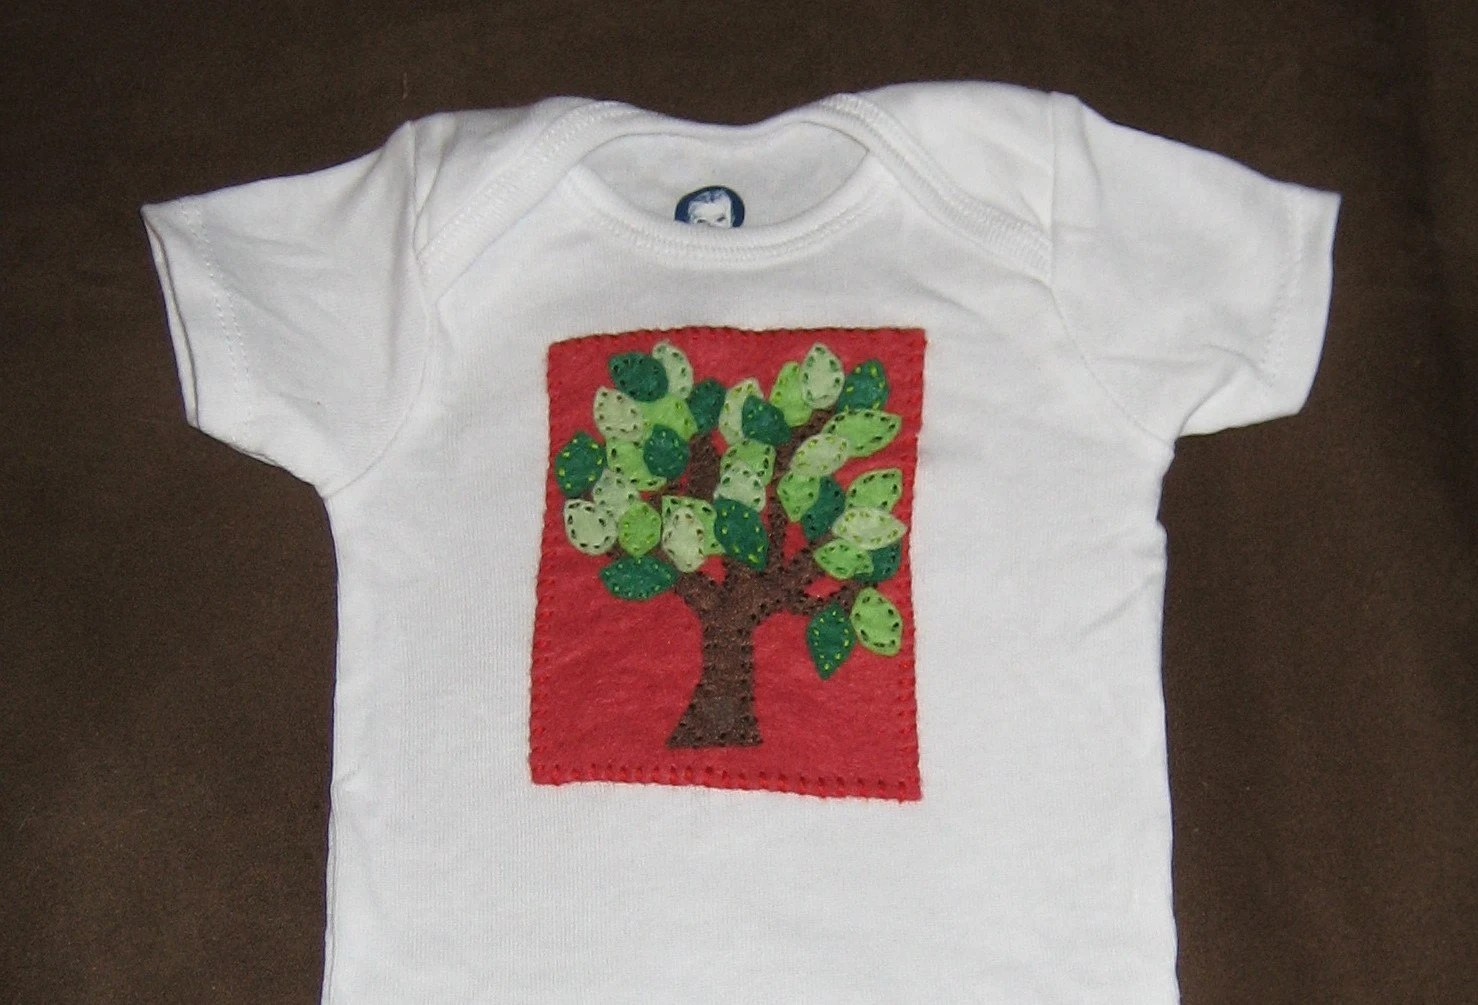 Tree on red background onesie